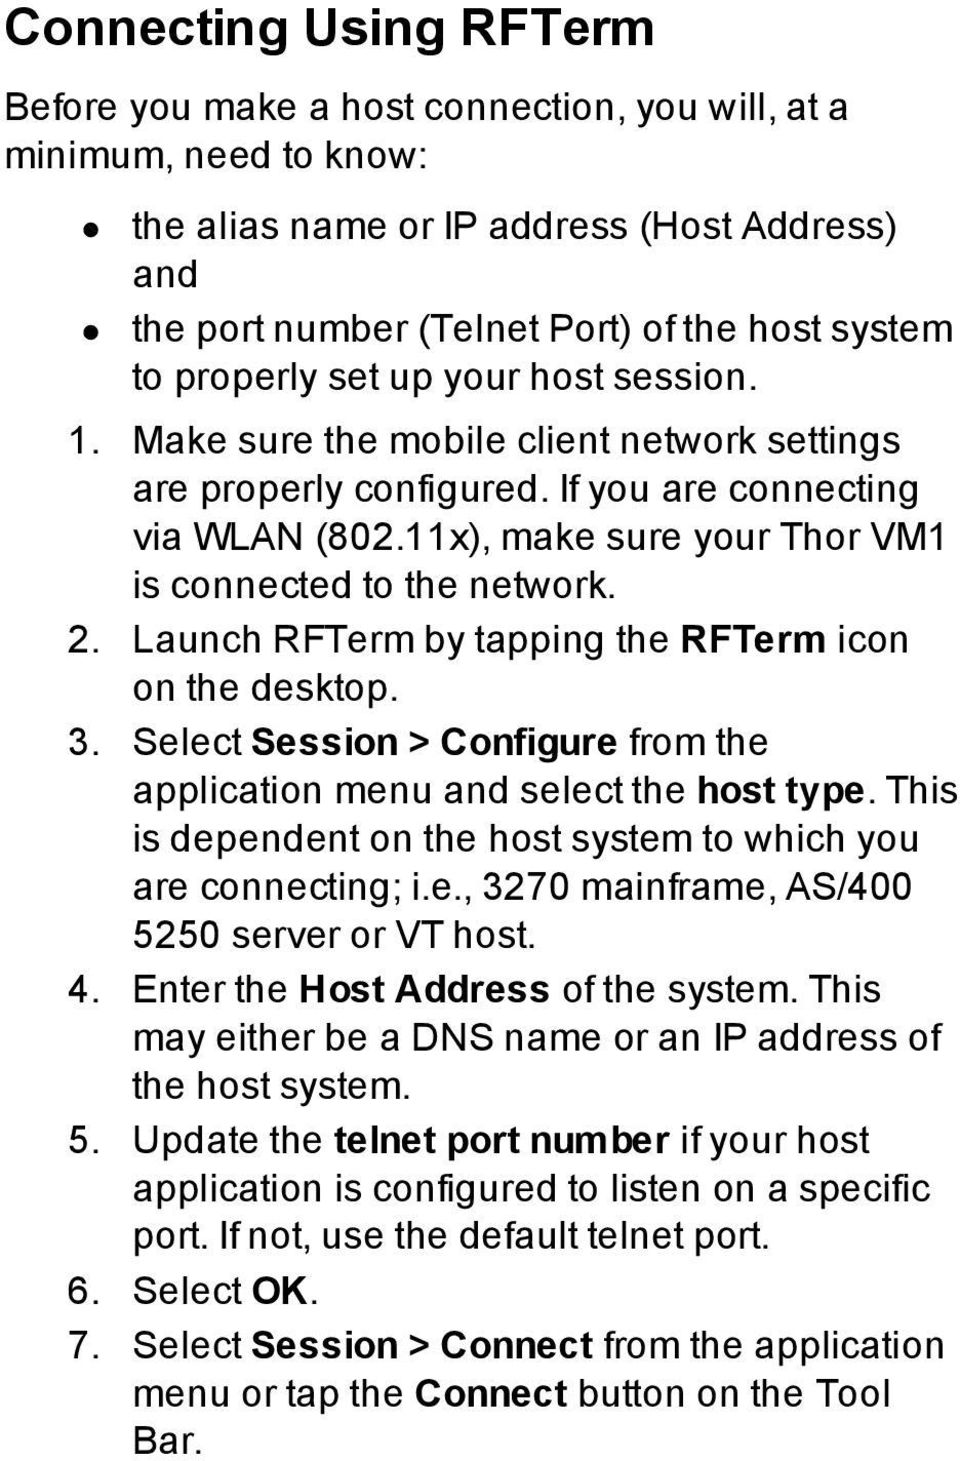 11x), make sure your Thor VM1 is connected to the network. 2. Launch RFTerm by tapping the RFTerm icon on the desktop. 3. Select Session > Configure from the application menu and select the host type.